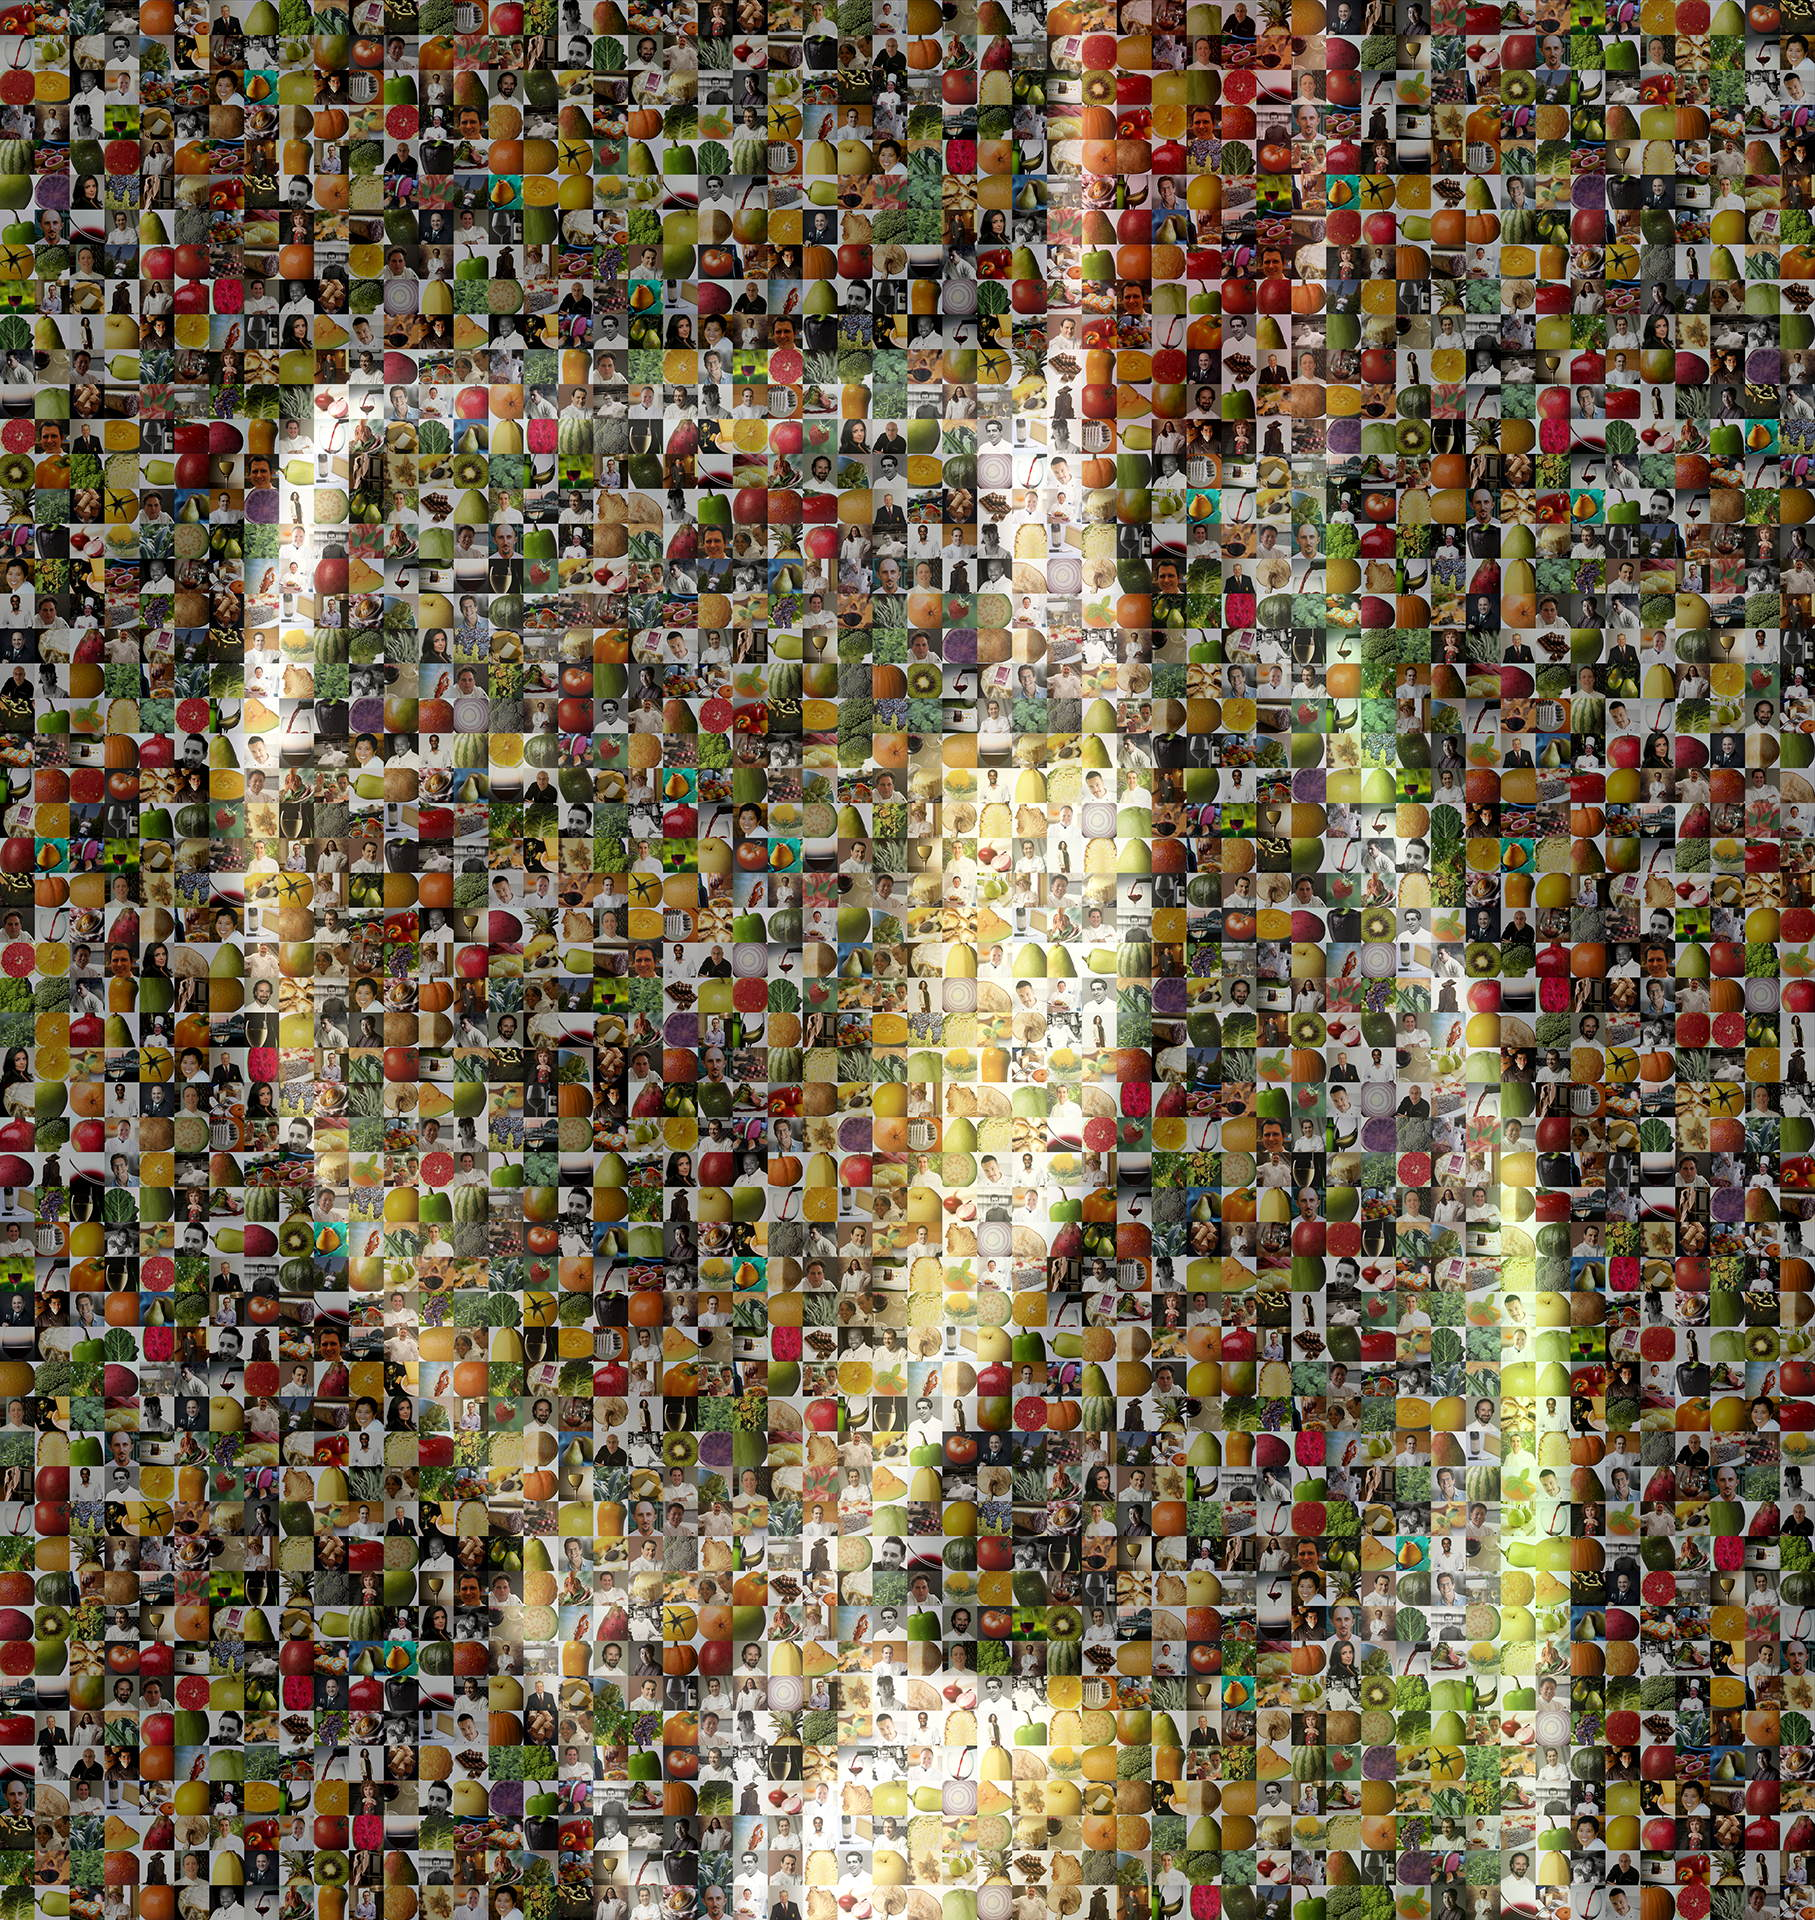 photo mosaic created using 144 product photos